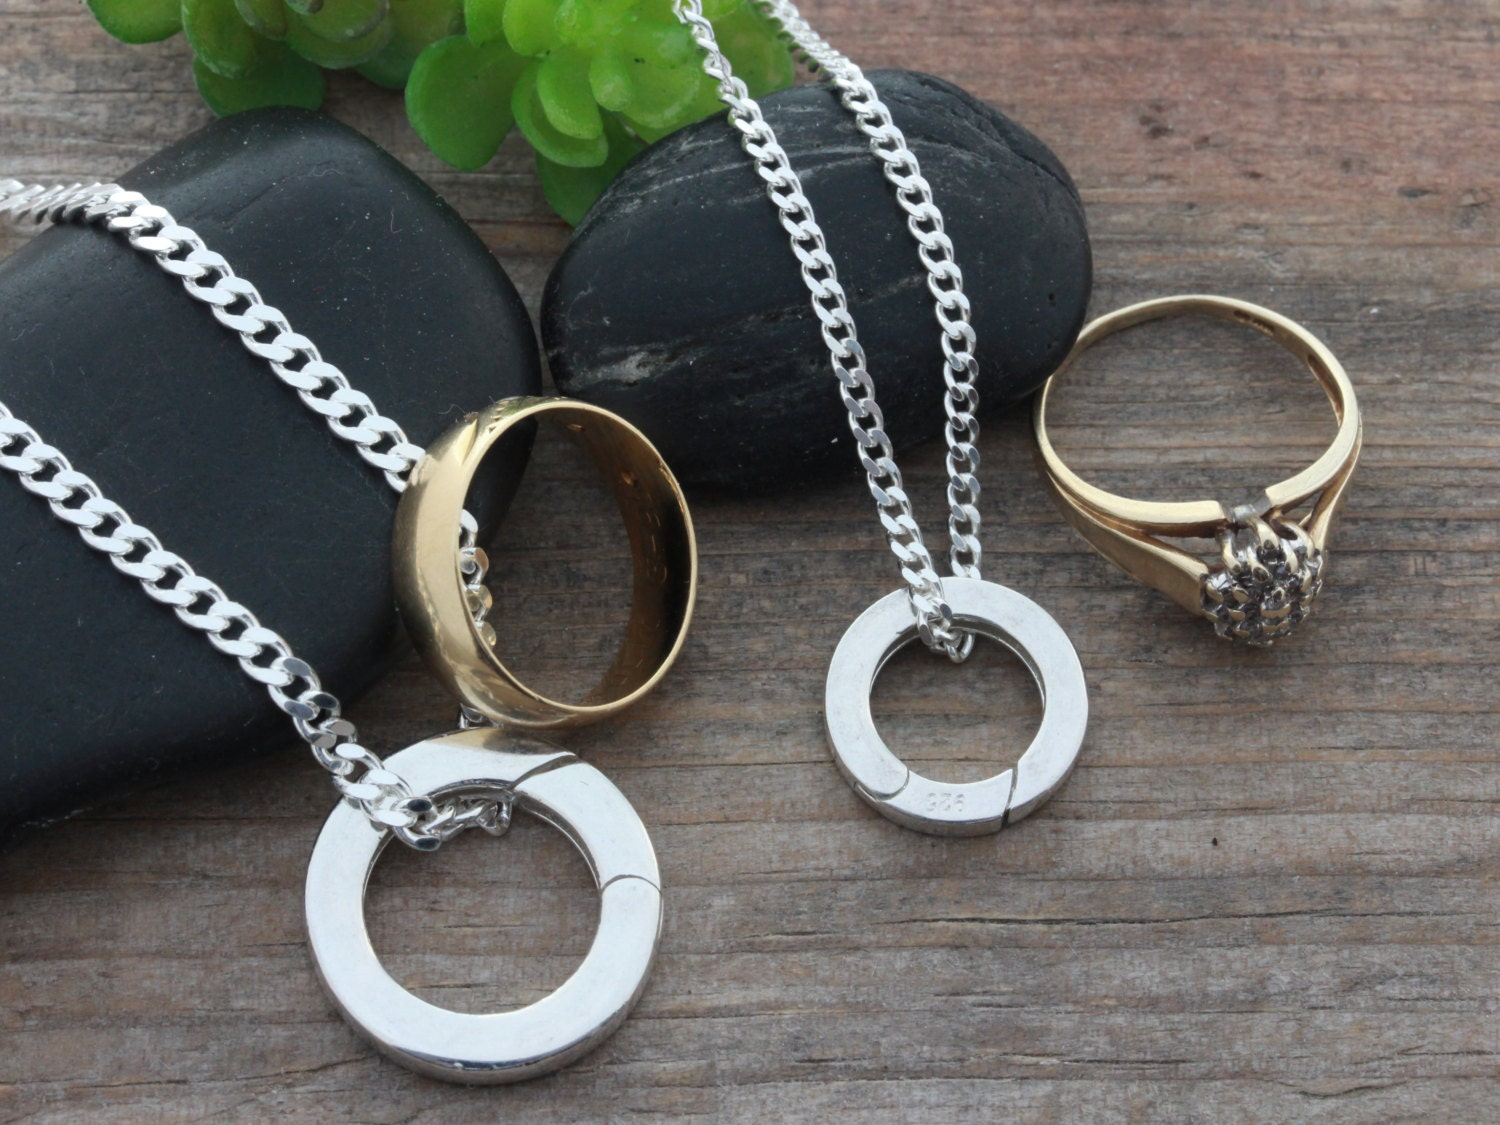 zoom - Wedding Ring Necklace